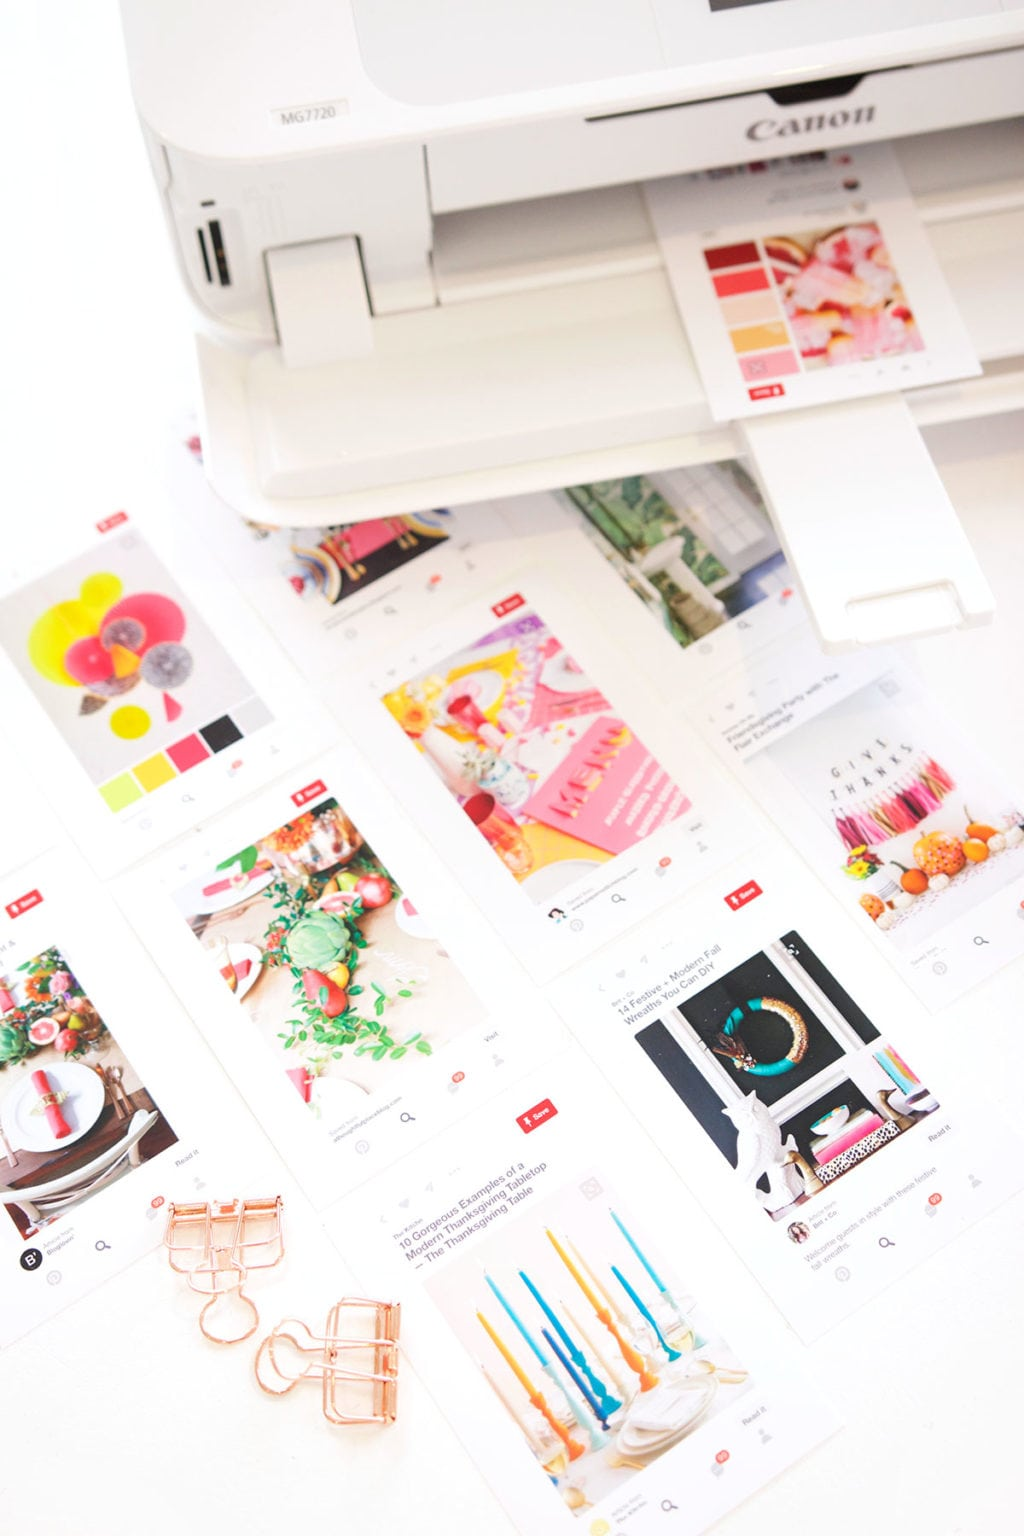 Inspire your creativity this fall season and print your Pinterest as a visual reminder of the colors and looks you love